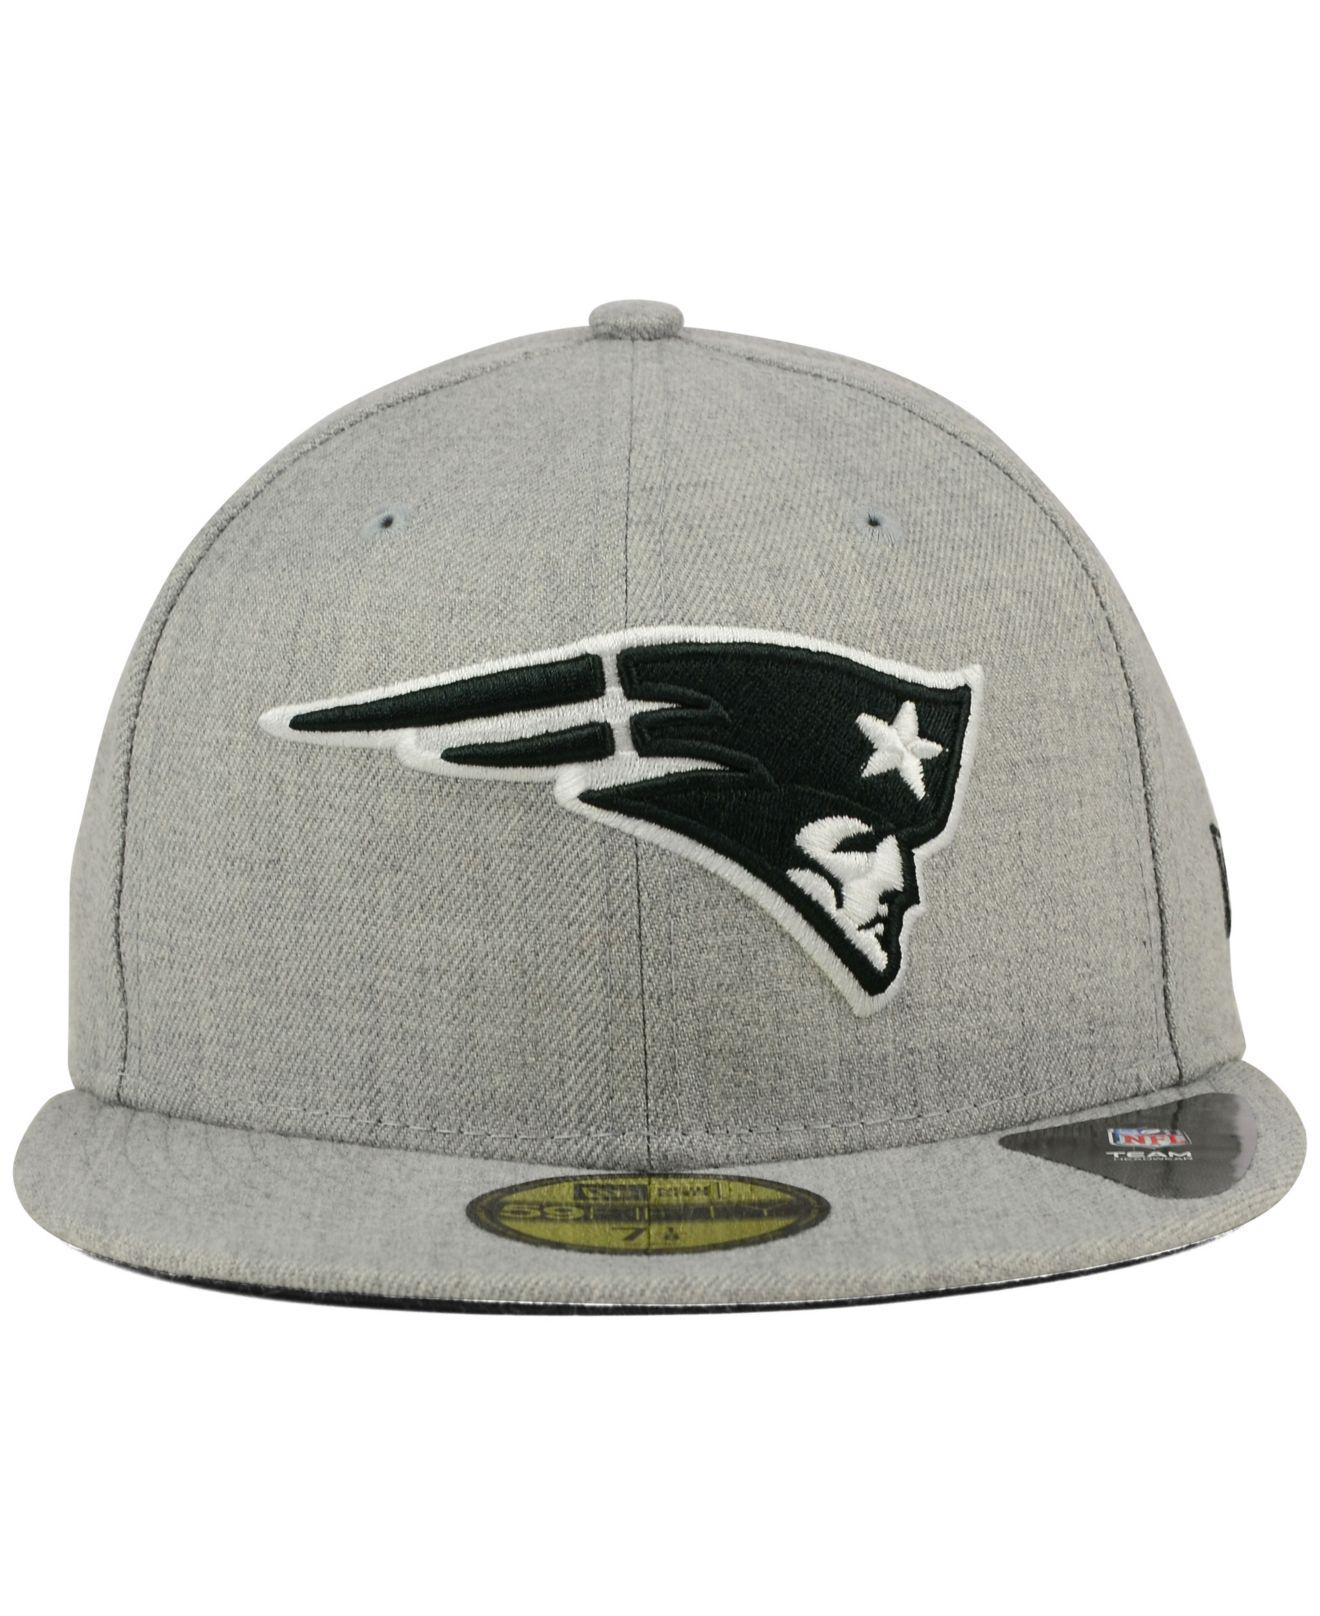 Lyst - KTZ New England Patriots Heather Black White 59fifty Cap in Gray for  Men e52b51af9